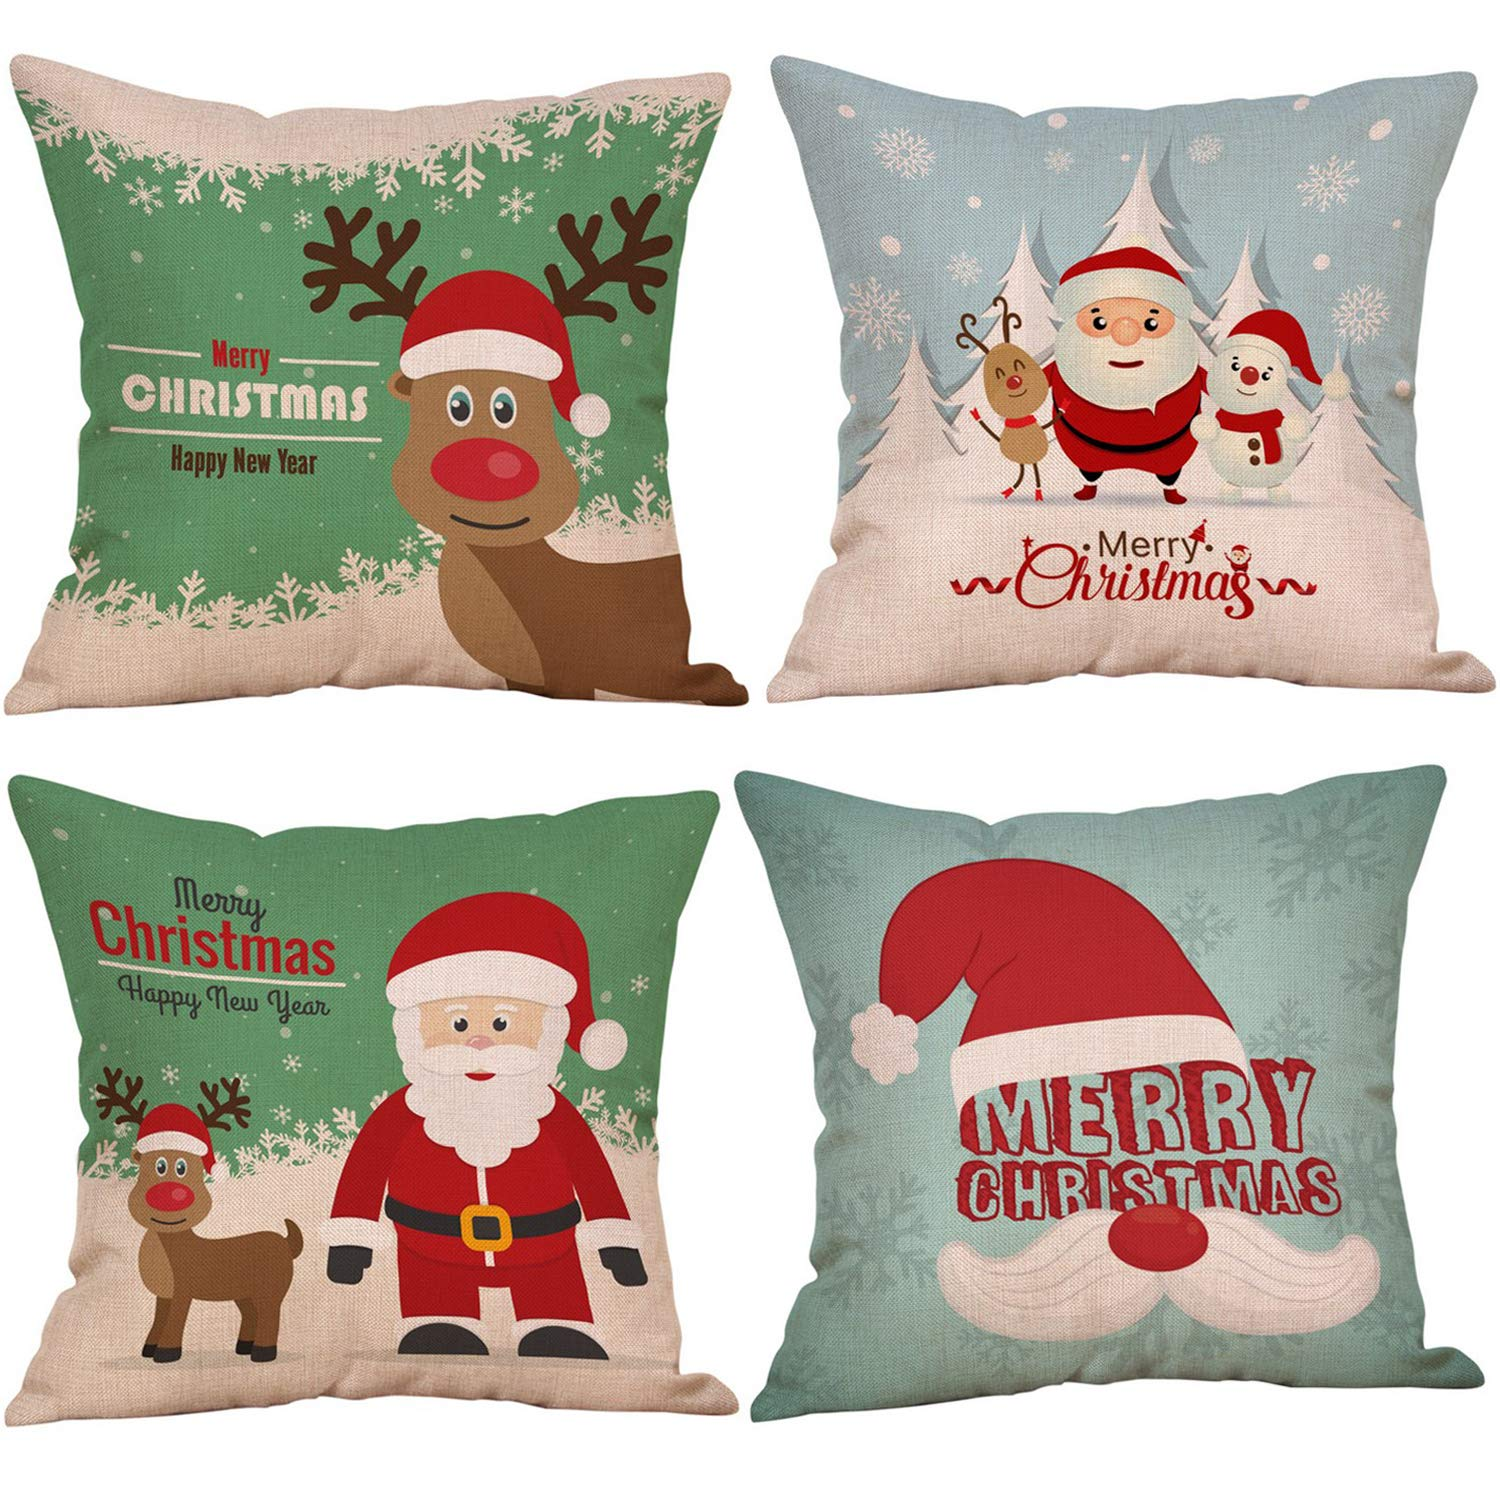 Kyerivs 4 Pack Christmas Pillow Cover Throw Cushion Cover 45 x 45 CM for Xmas Happy New Year Winter Home Decoration(NO Pillow) -CD2